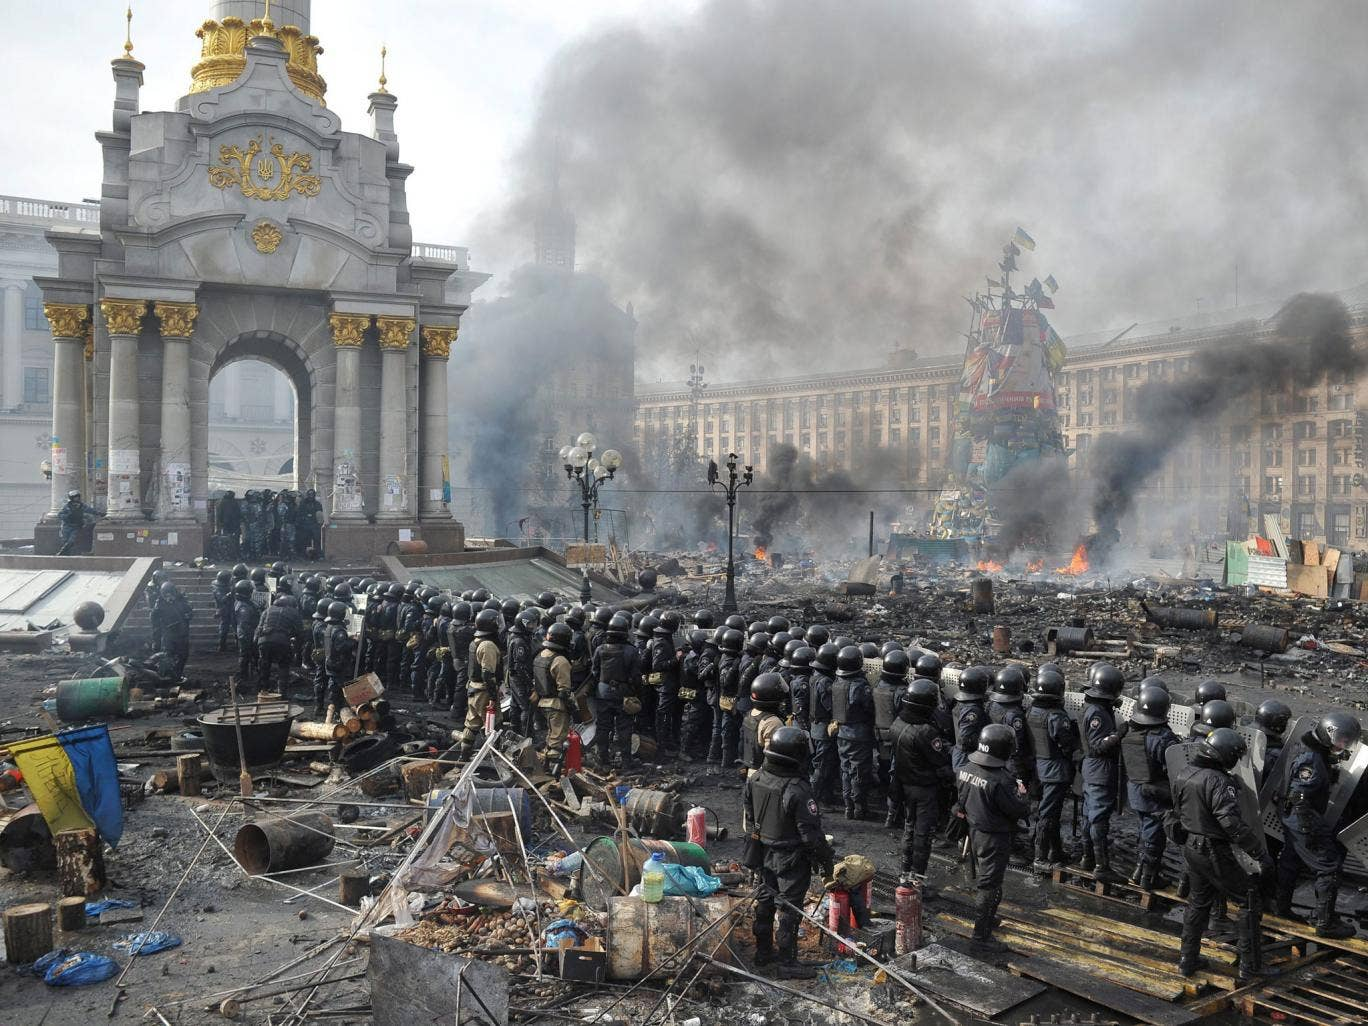 Riot police line up against anti-government protesters in Independence Square in central Kiev. More than 600 police and protesters have been injured